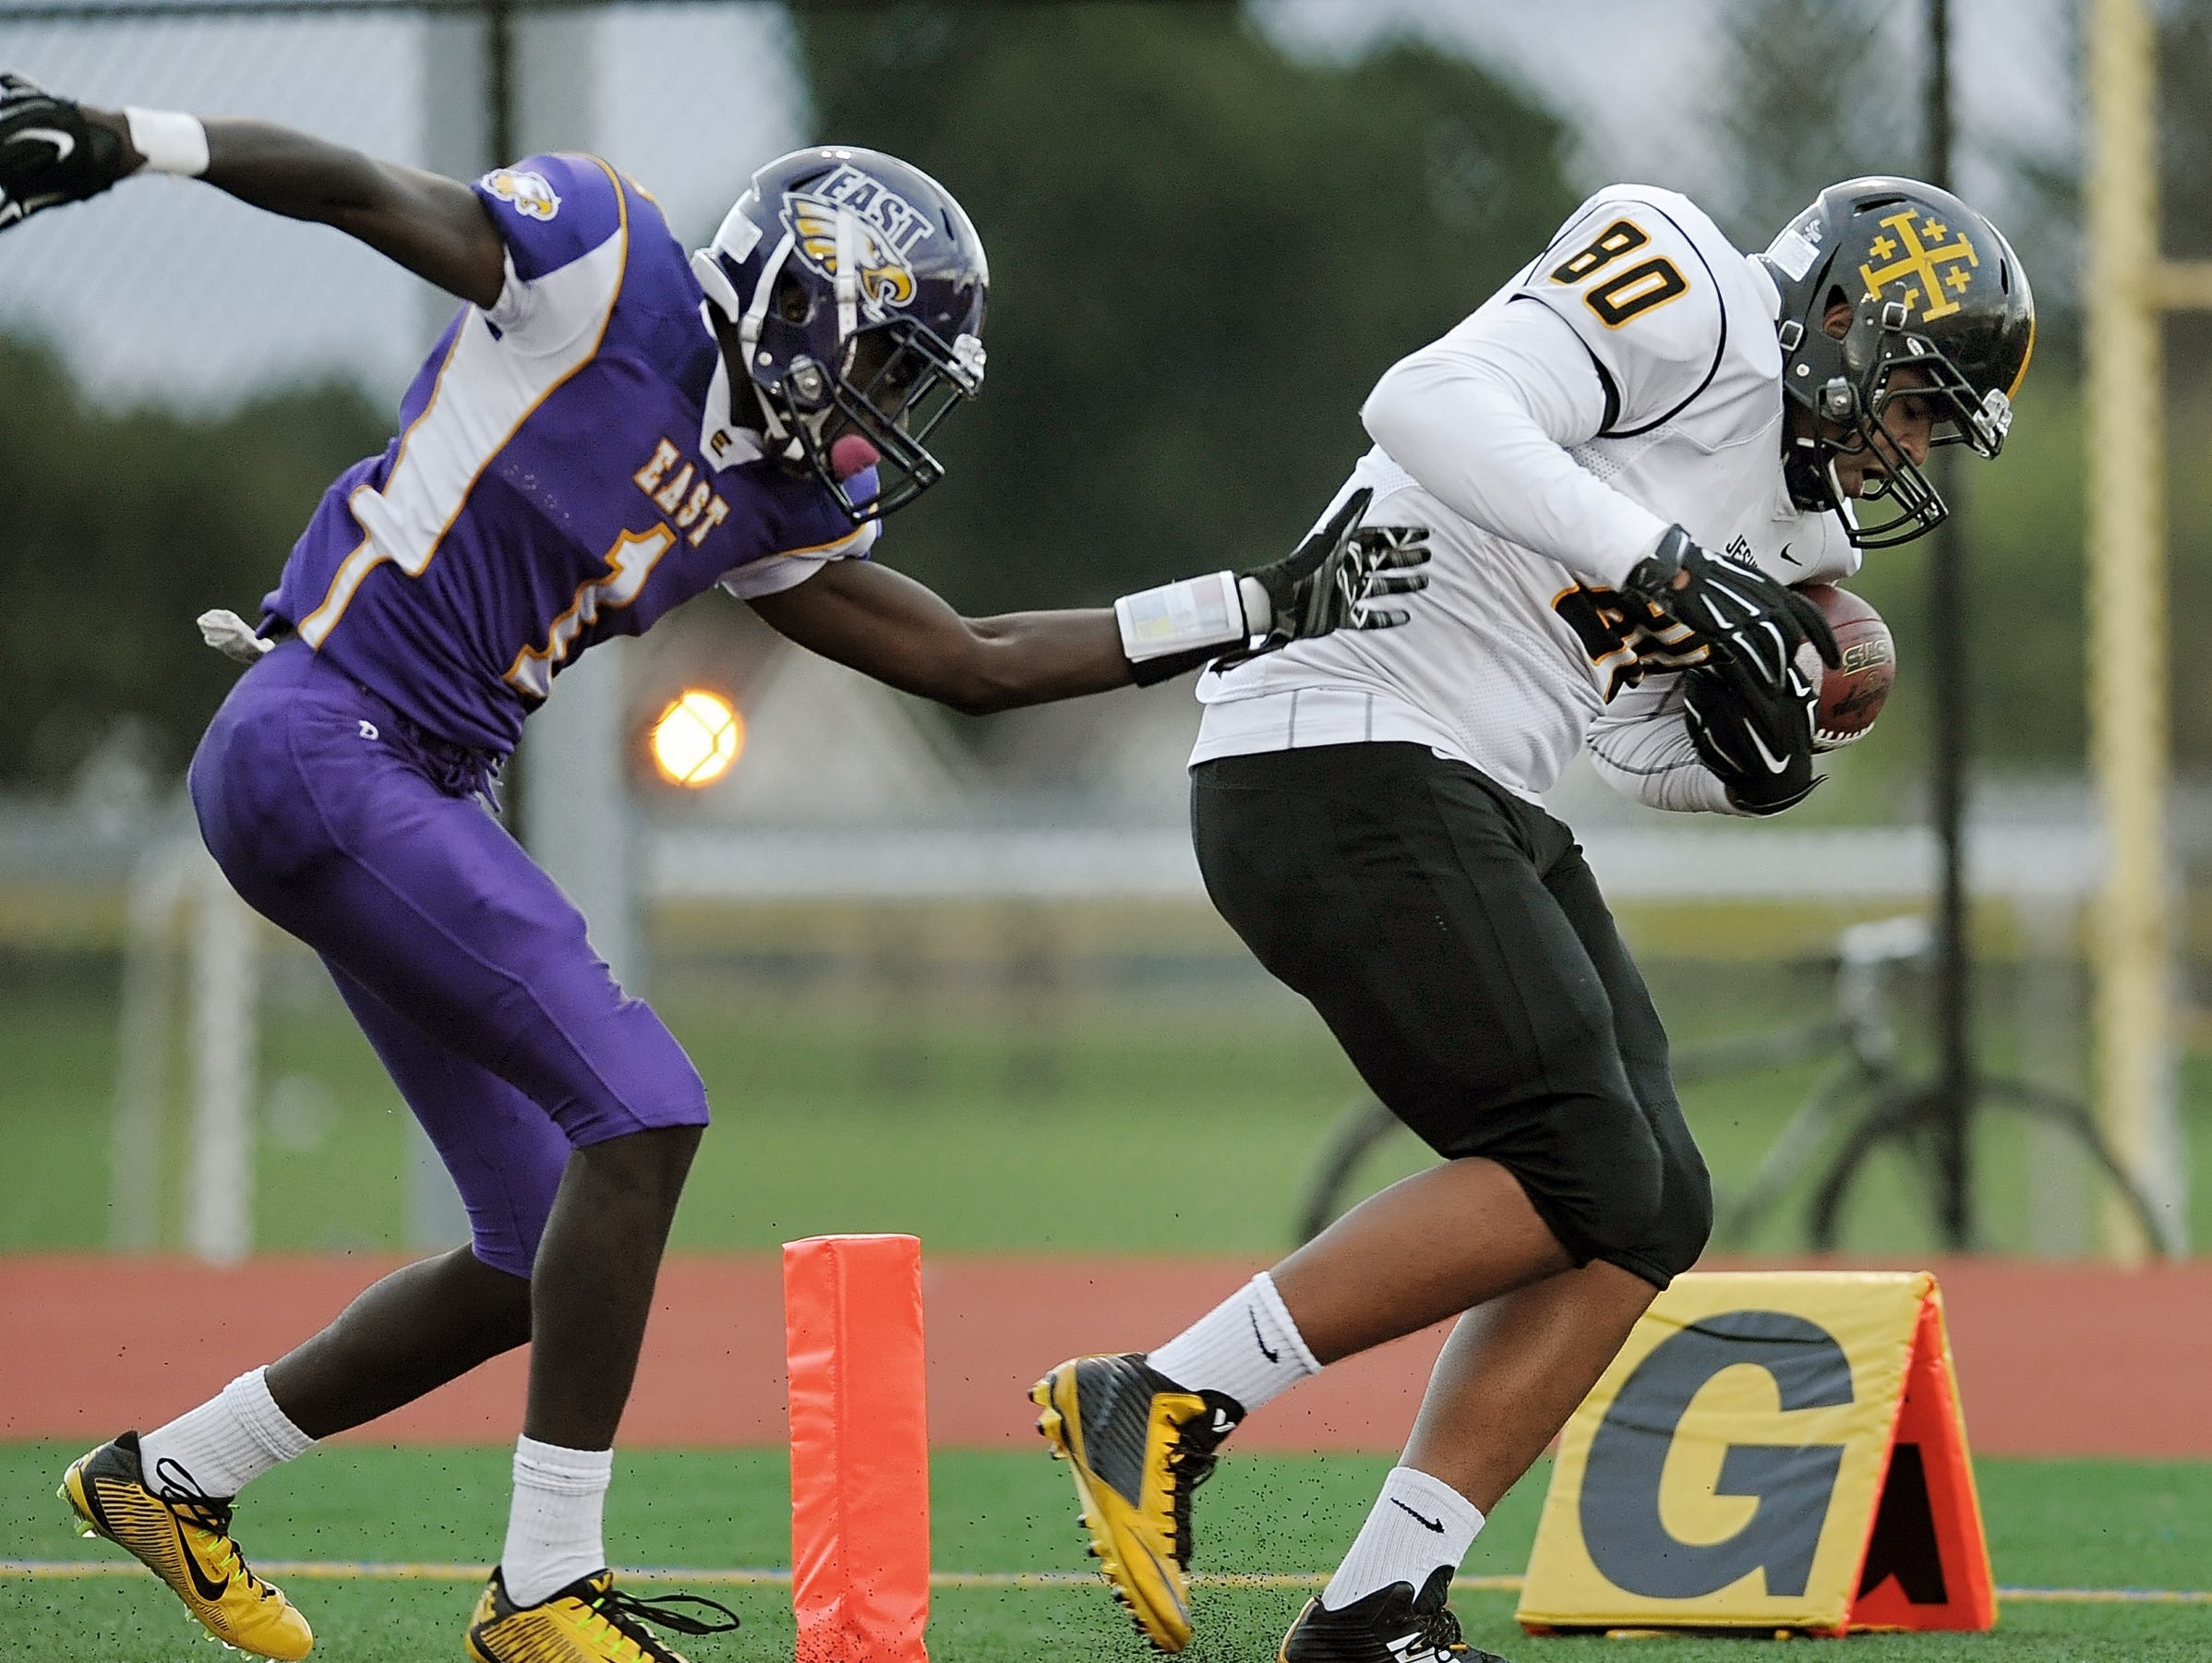 McQuaid's Demetrius Breedlove, right, was named the 2014 Rochester City Athletic Conference Player of the Year.